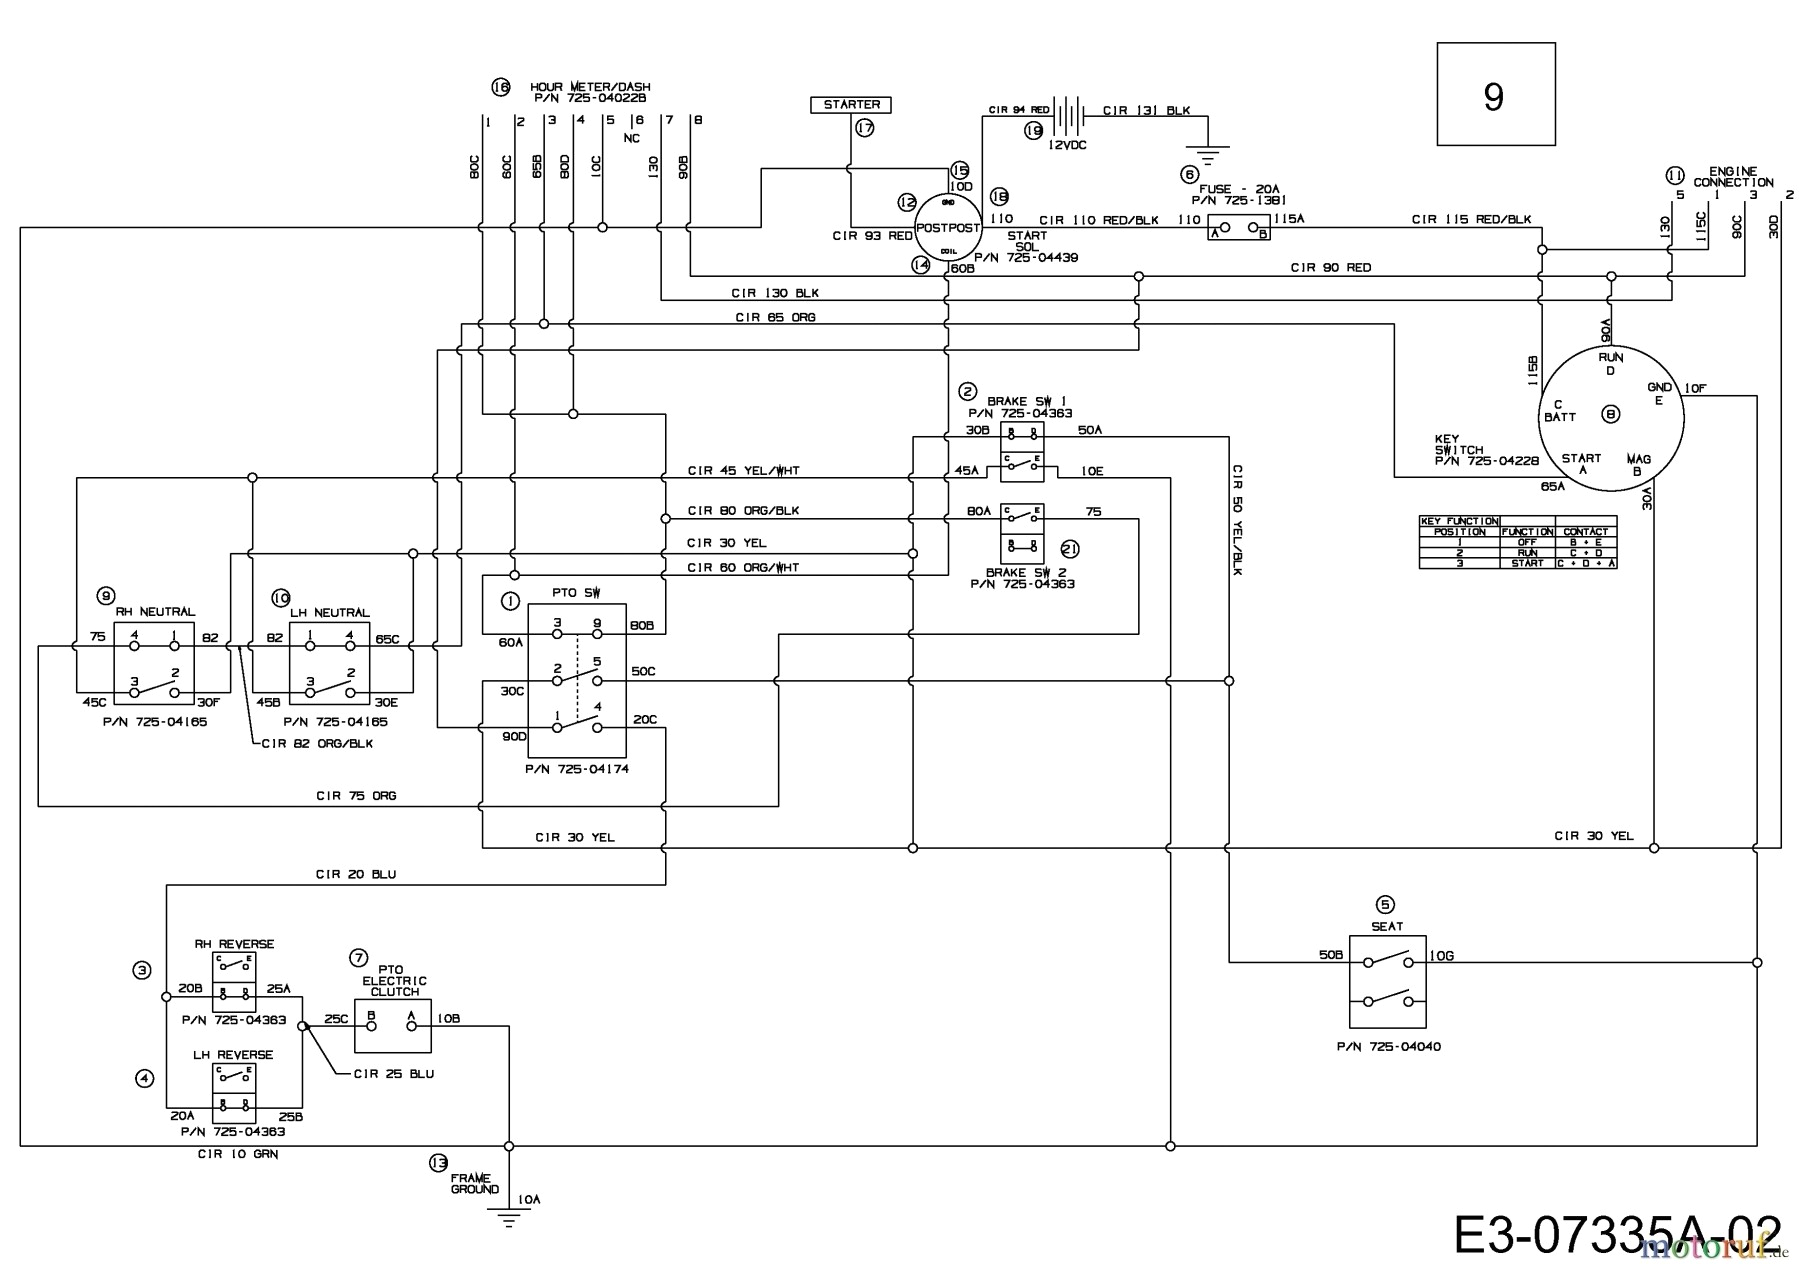 wiring diagram for cub cadet zero turn the wiring diagram for cub cadet rzt 50 parts diagram jpg